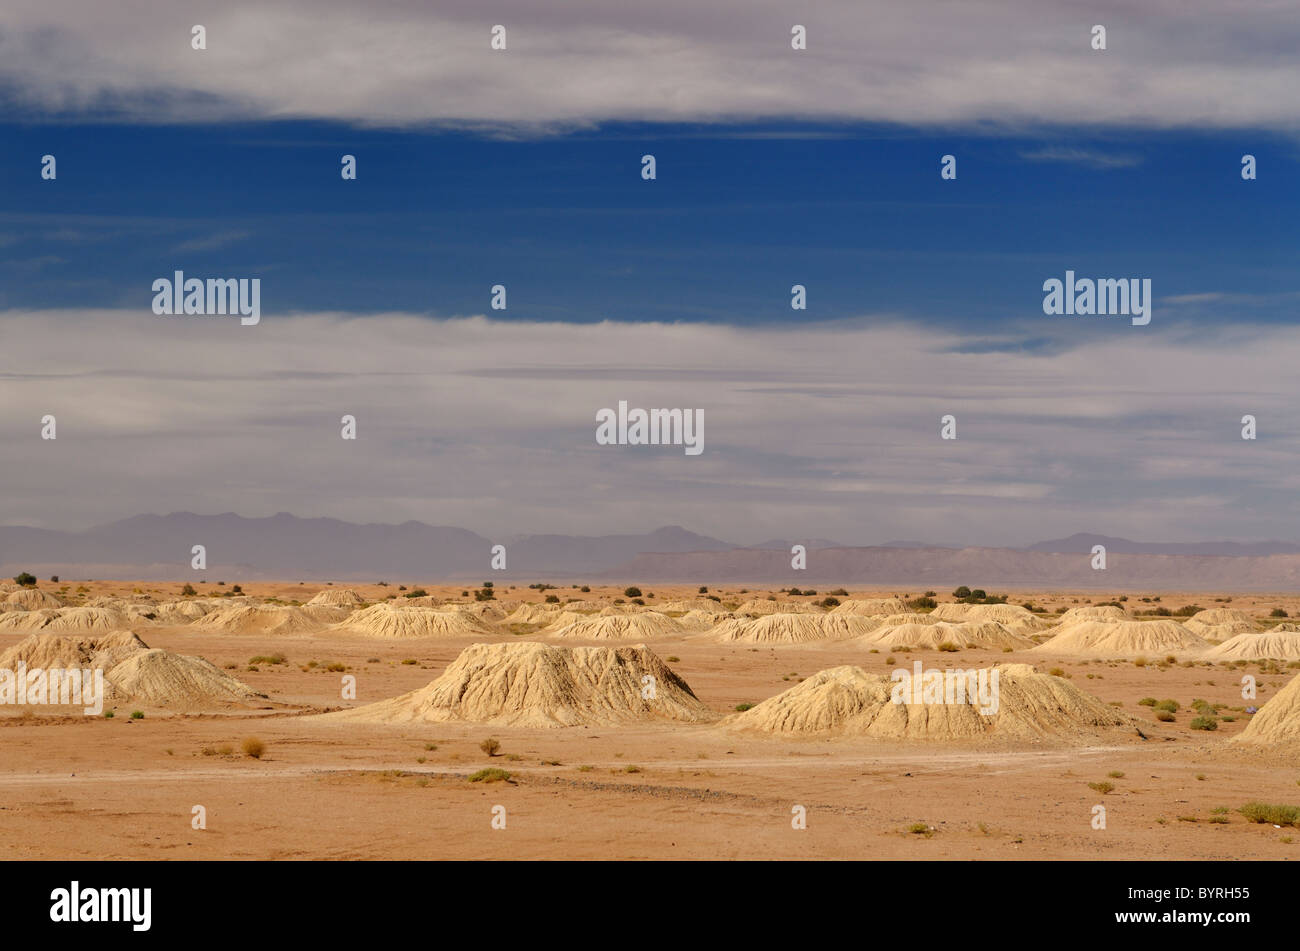 Many ancient earth mound Khettara wells in the Tafilalt plain with High Atlas mountains Morocco - Stock Image